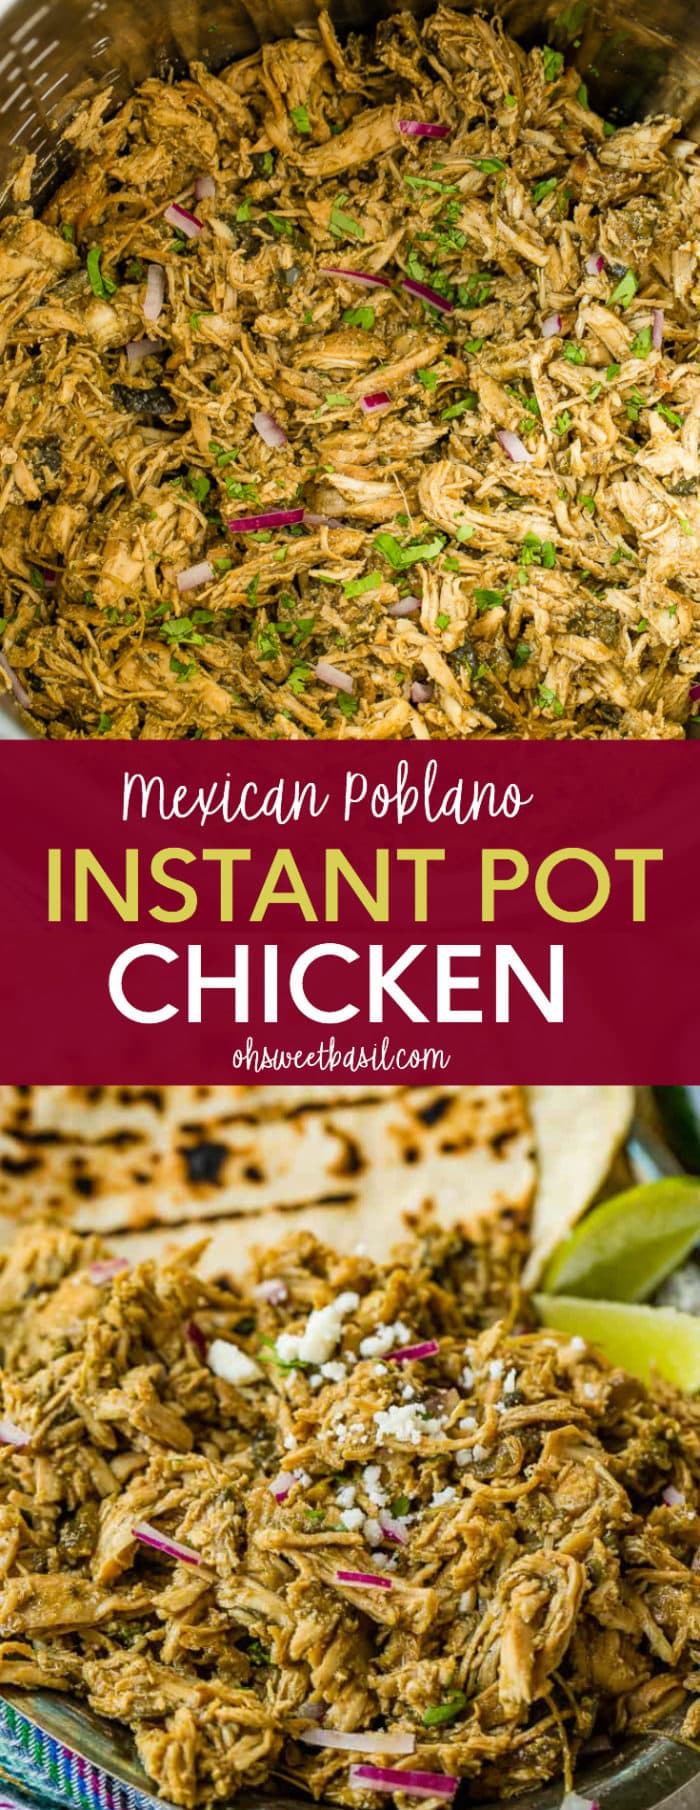 an instant pot full of shredded Mexican Poblano Instant Pot Chicken with a sprinkle of chopped cilantro over the top.